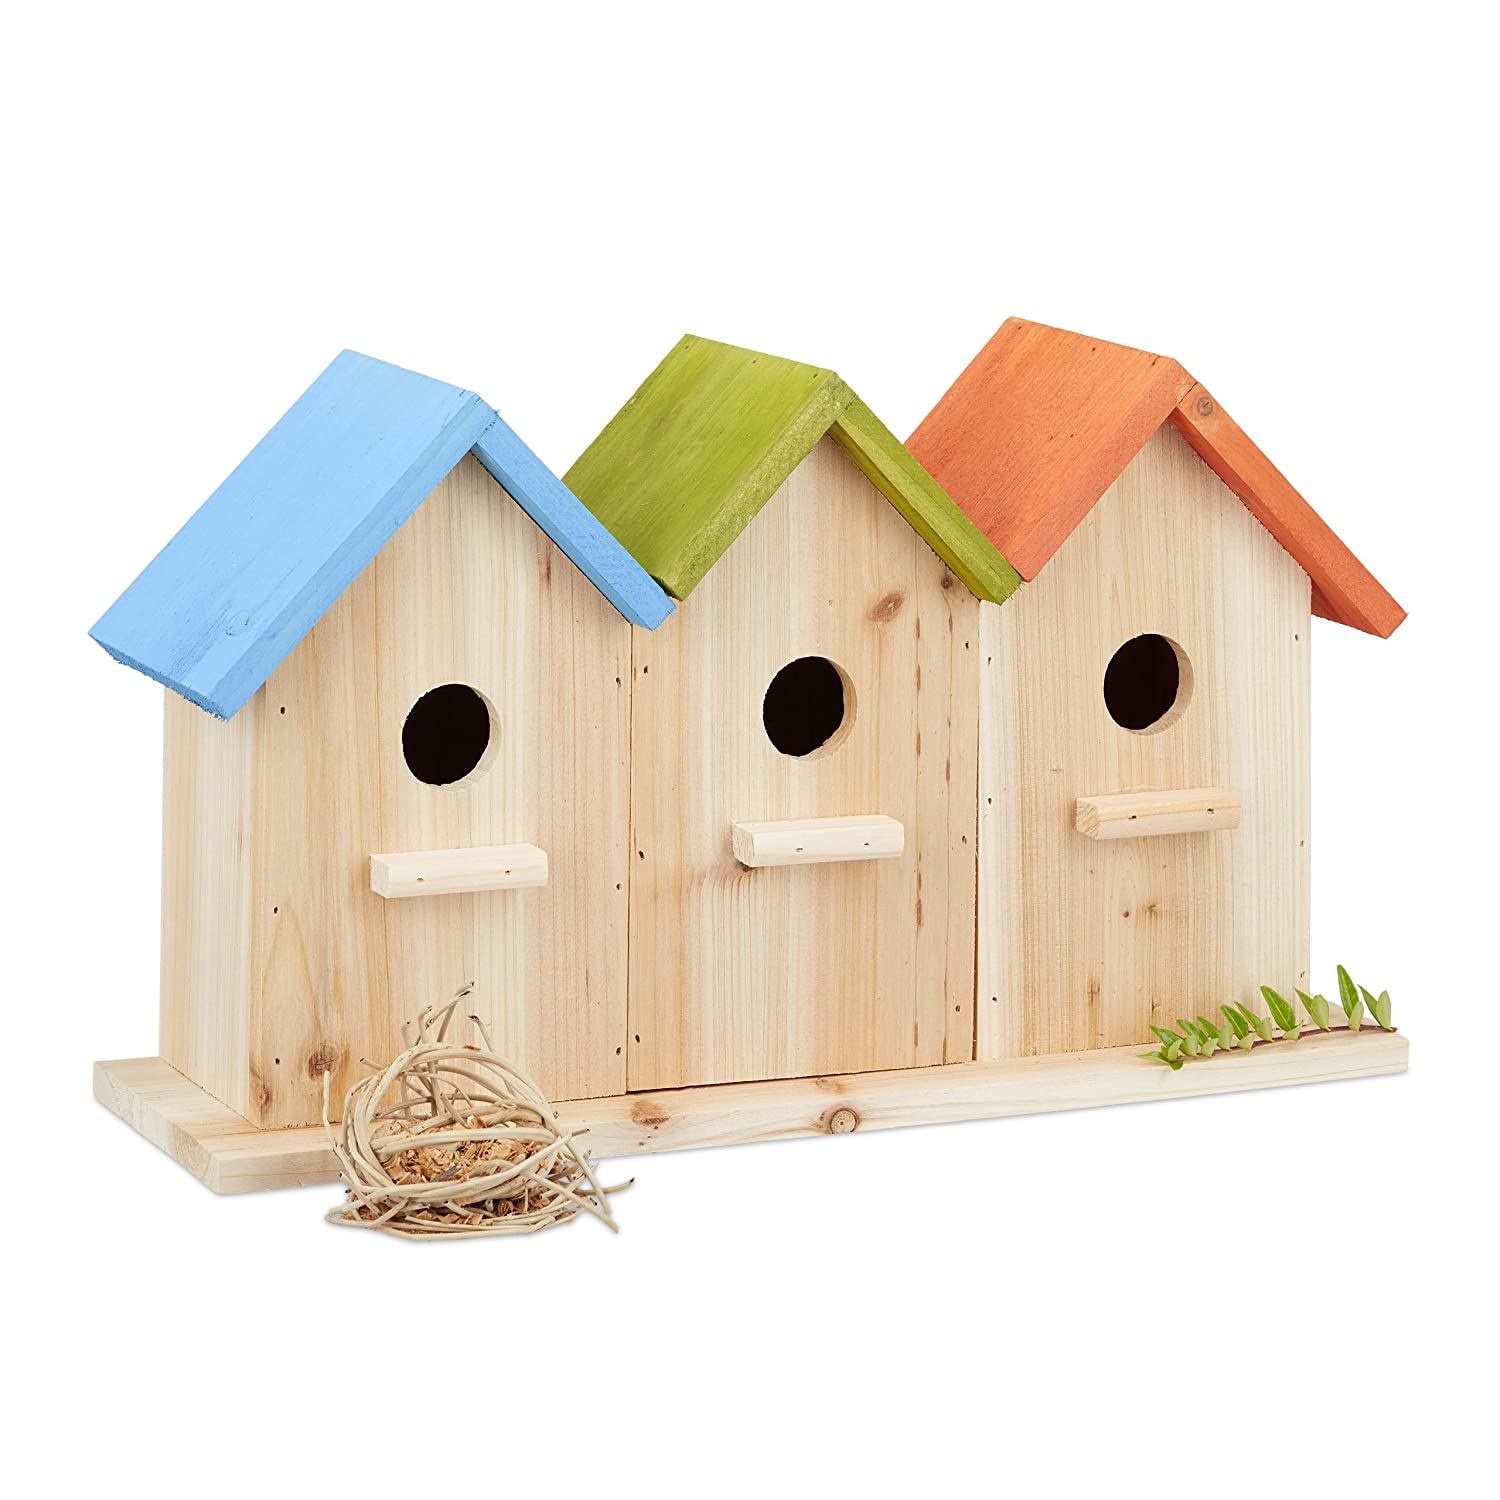 Relaxdays Wooden Birdhouses, 3 Nesting Boxes, Decorative Breeding Aid for Balcony or Garden, HxWxD: 23 x 40 x 12.5 cm, Colourful 10023161